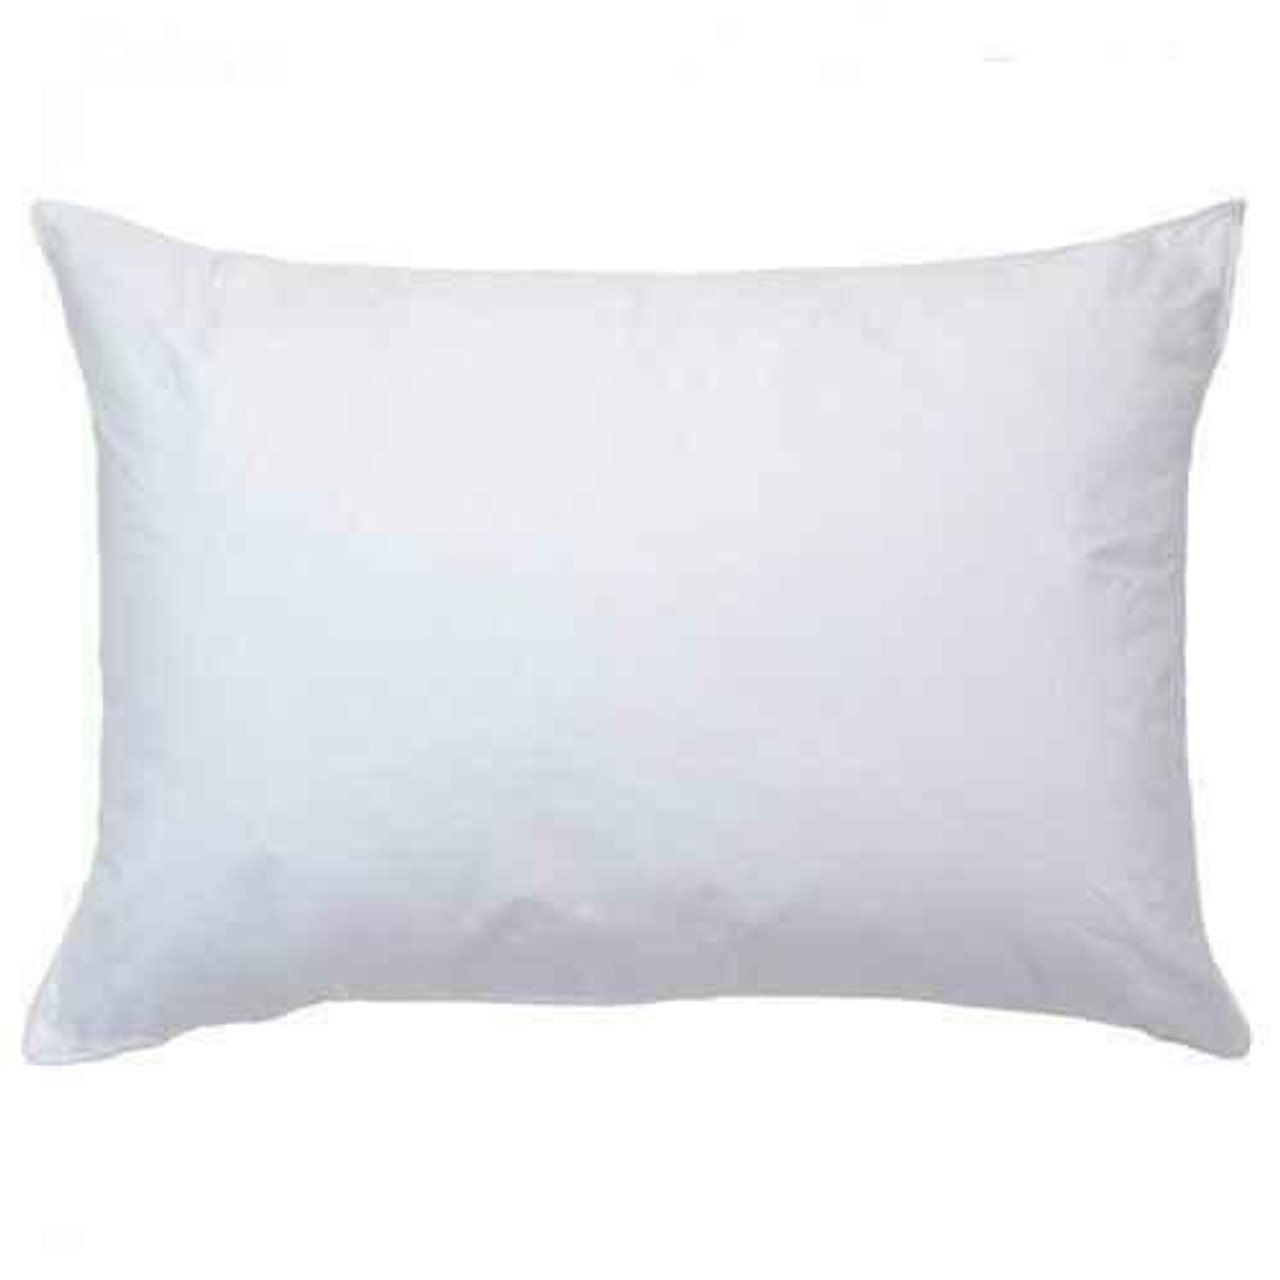 WestPoint/Martex Westpoint or Martex Disposable Healthcare Hotel Pillow or 18 Oz or Pack Of 12